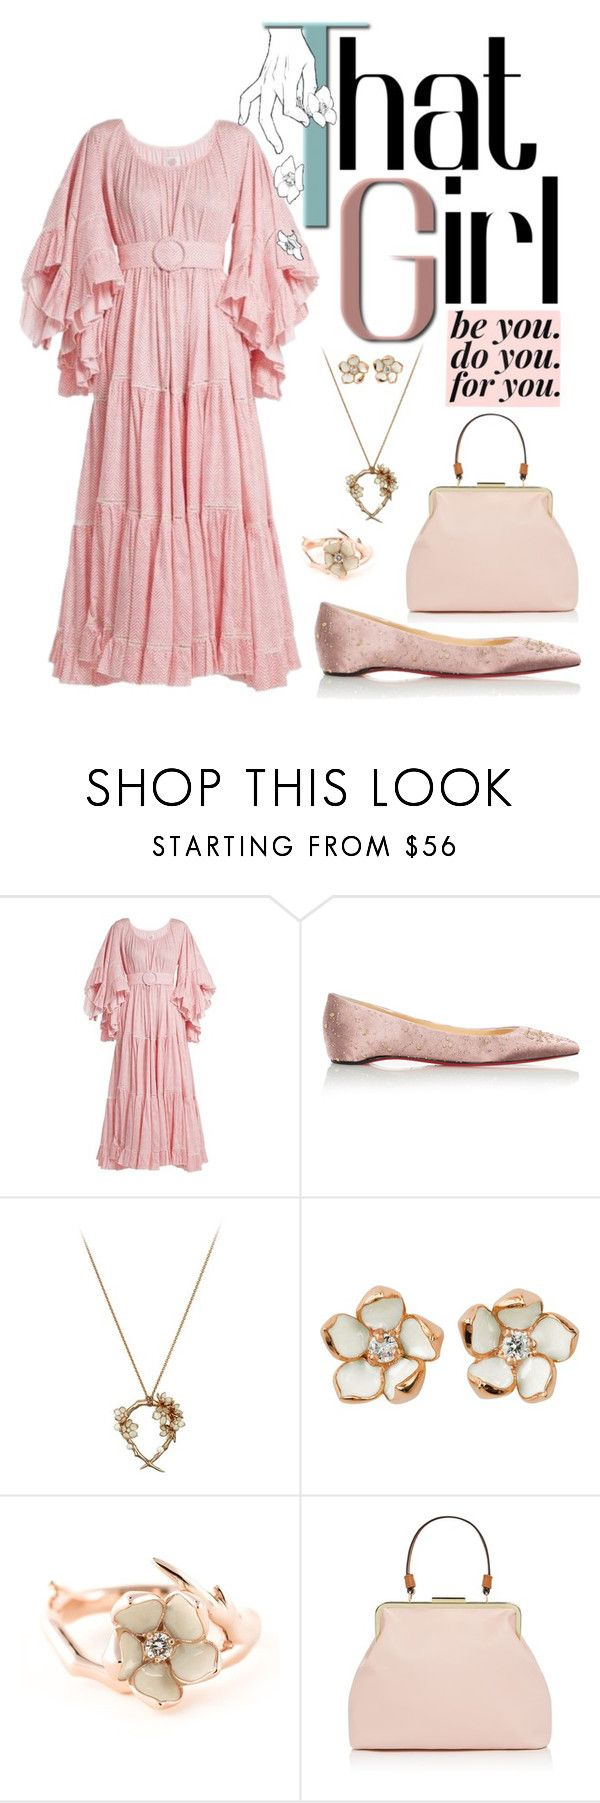 """That Girl"" by daughter-of-apollo92 ❤ liked on Polyvore featuring Gül Hürgel, Shaun Leane and Therapy"